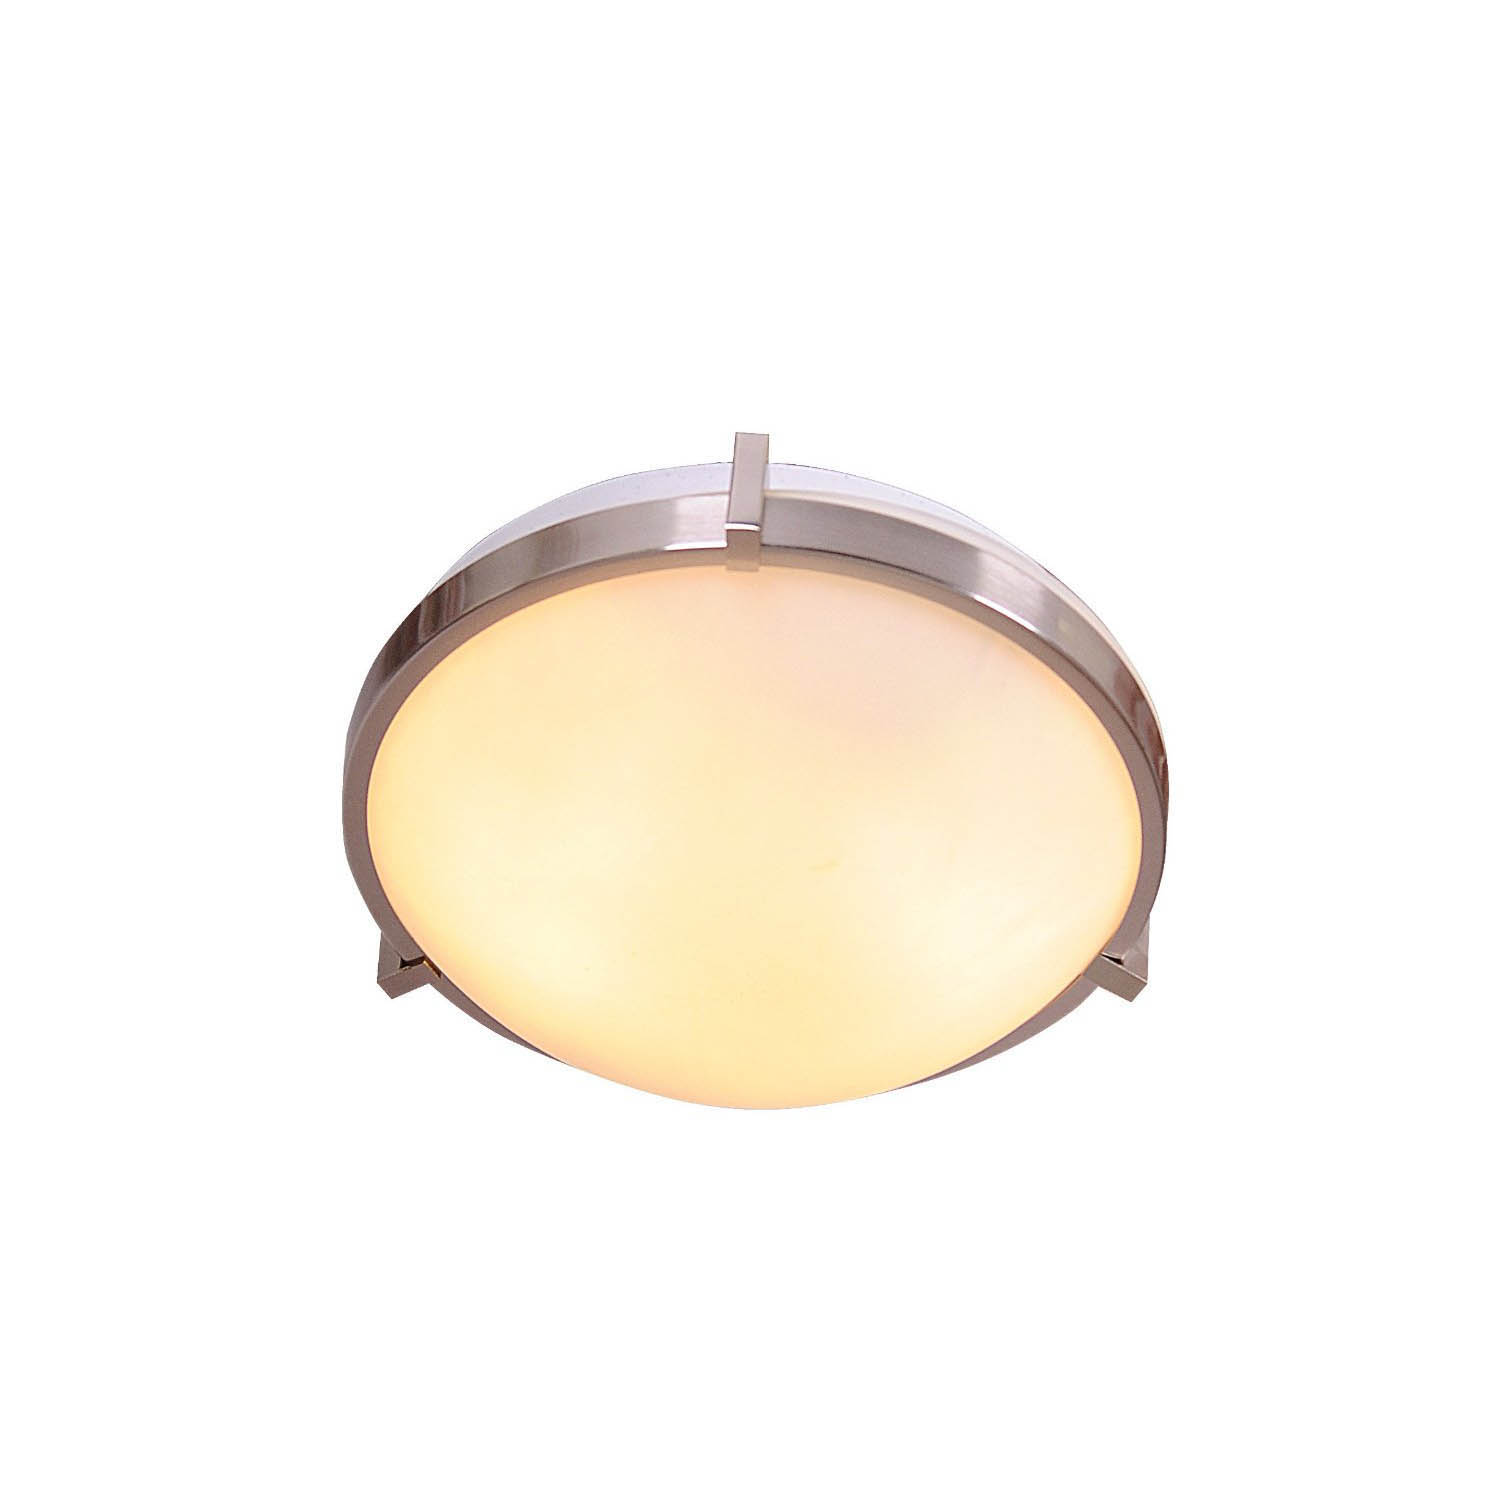 Design House Eastport 2 Light 13' Indoor Ceiling Mount in Satin Nickel - 570937